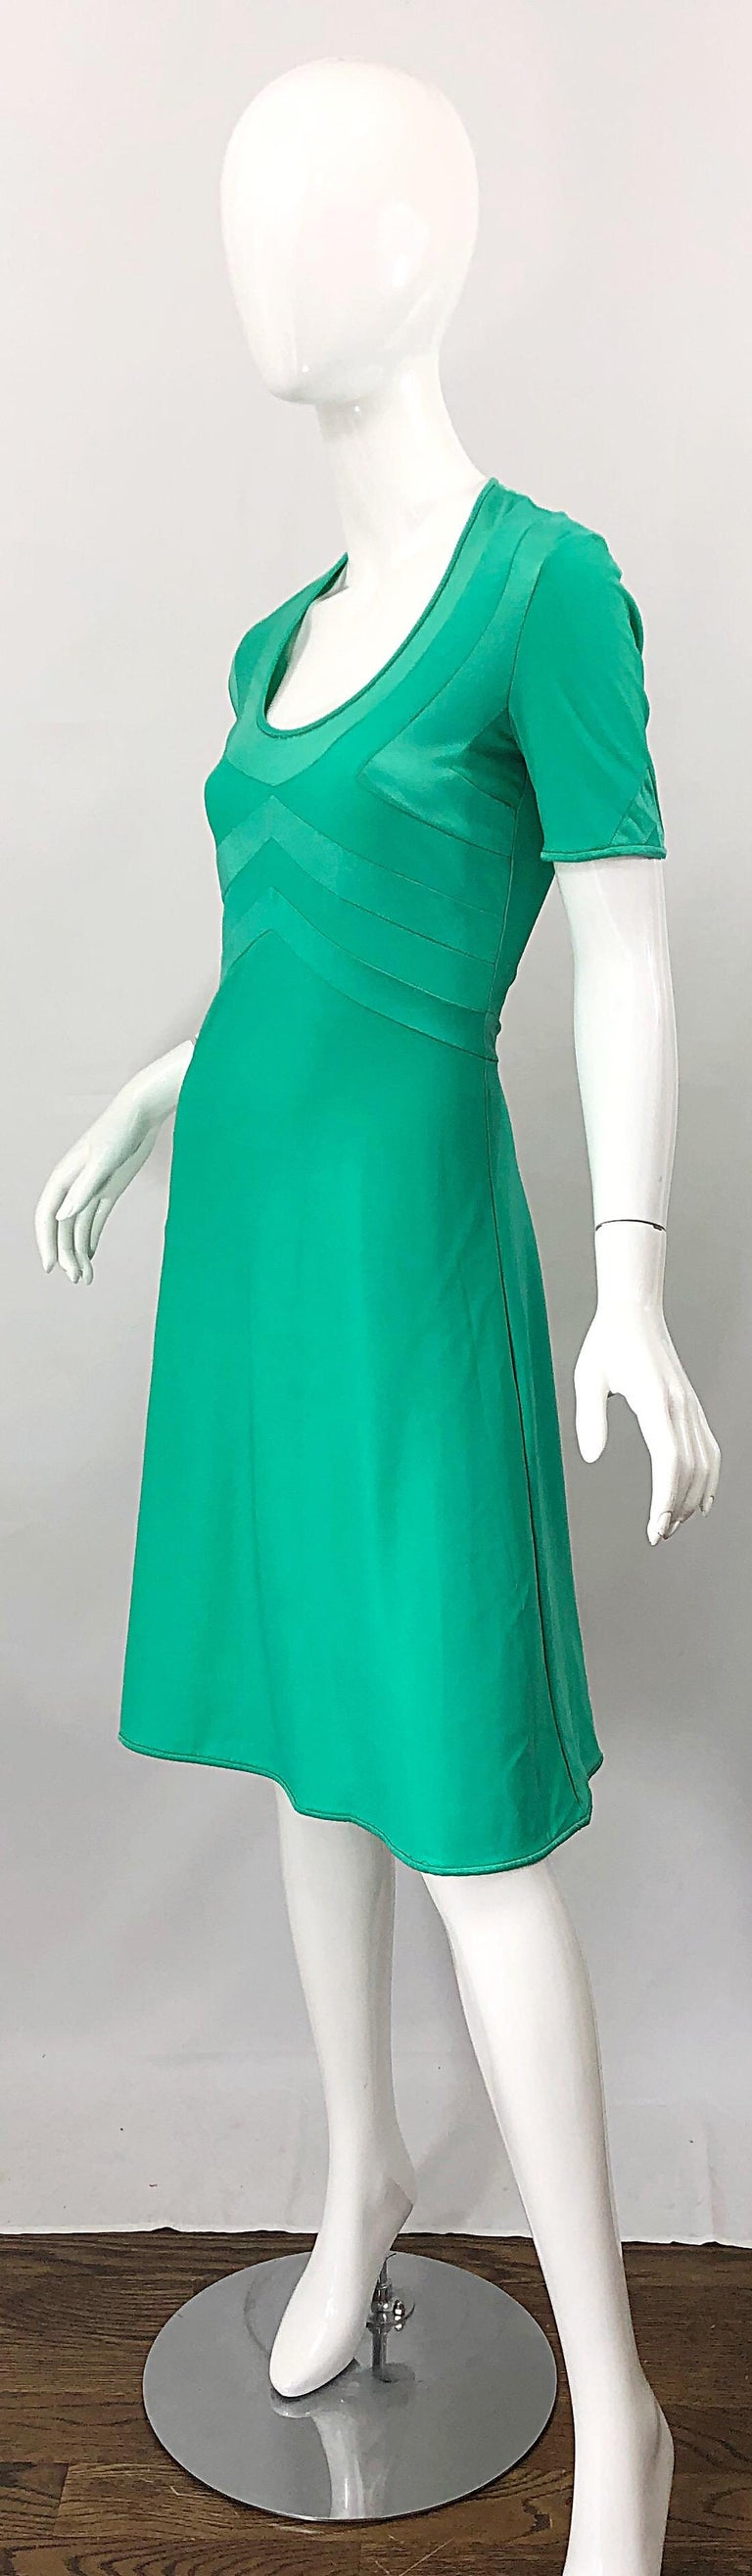 Giorgio di Sant Angelo Kelly Green Slinky Bodysuit Vintage 70s Jersey Dress For Sale 2